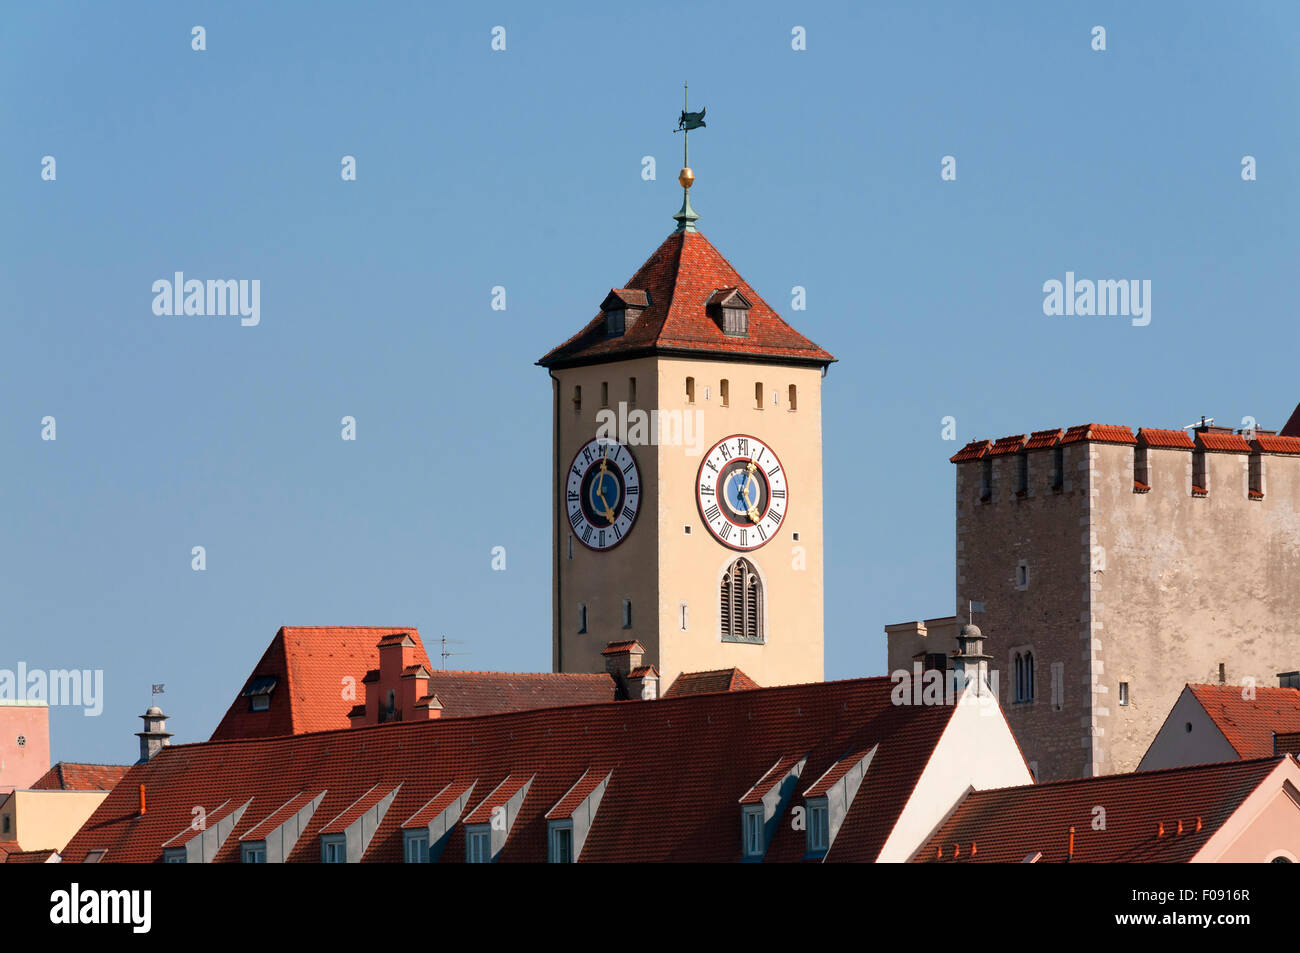 Tower of town hall in Regensburg, Bavaria, Germany and free space - Stock Image